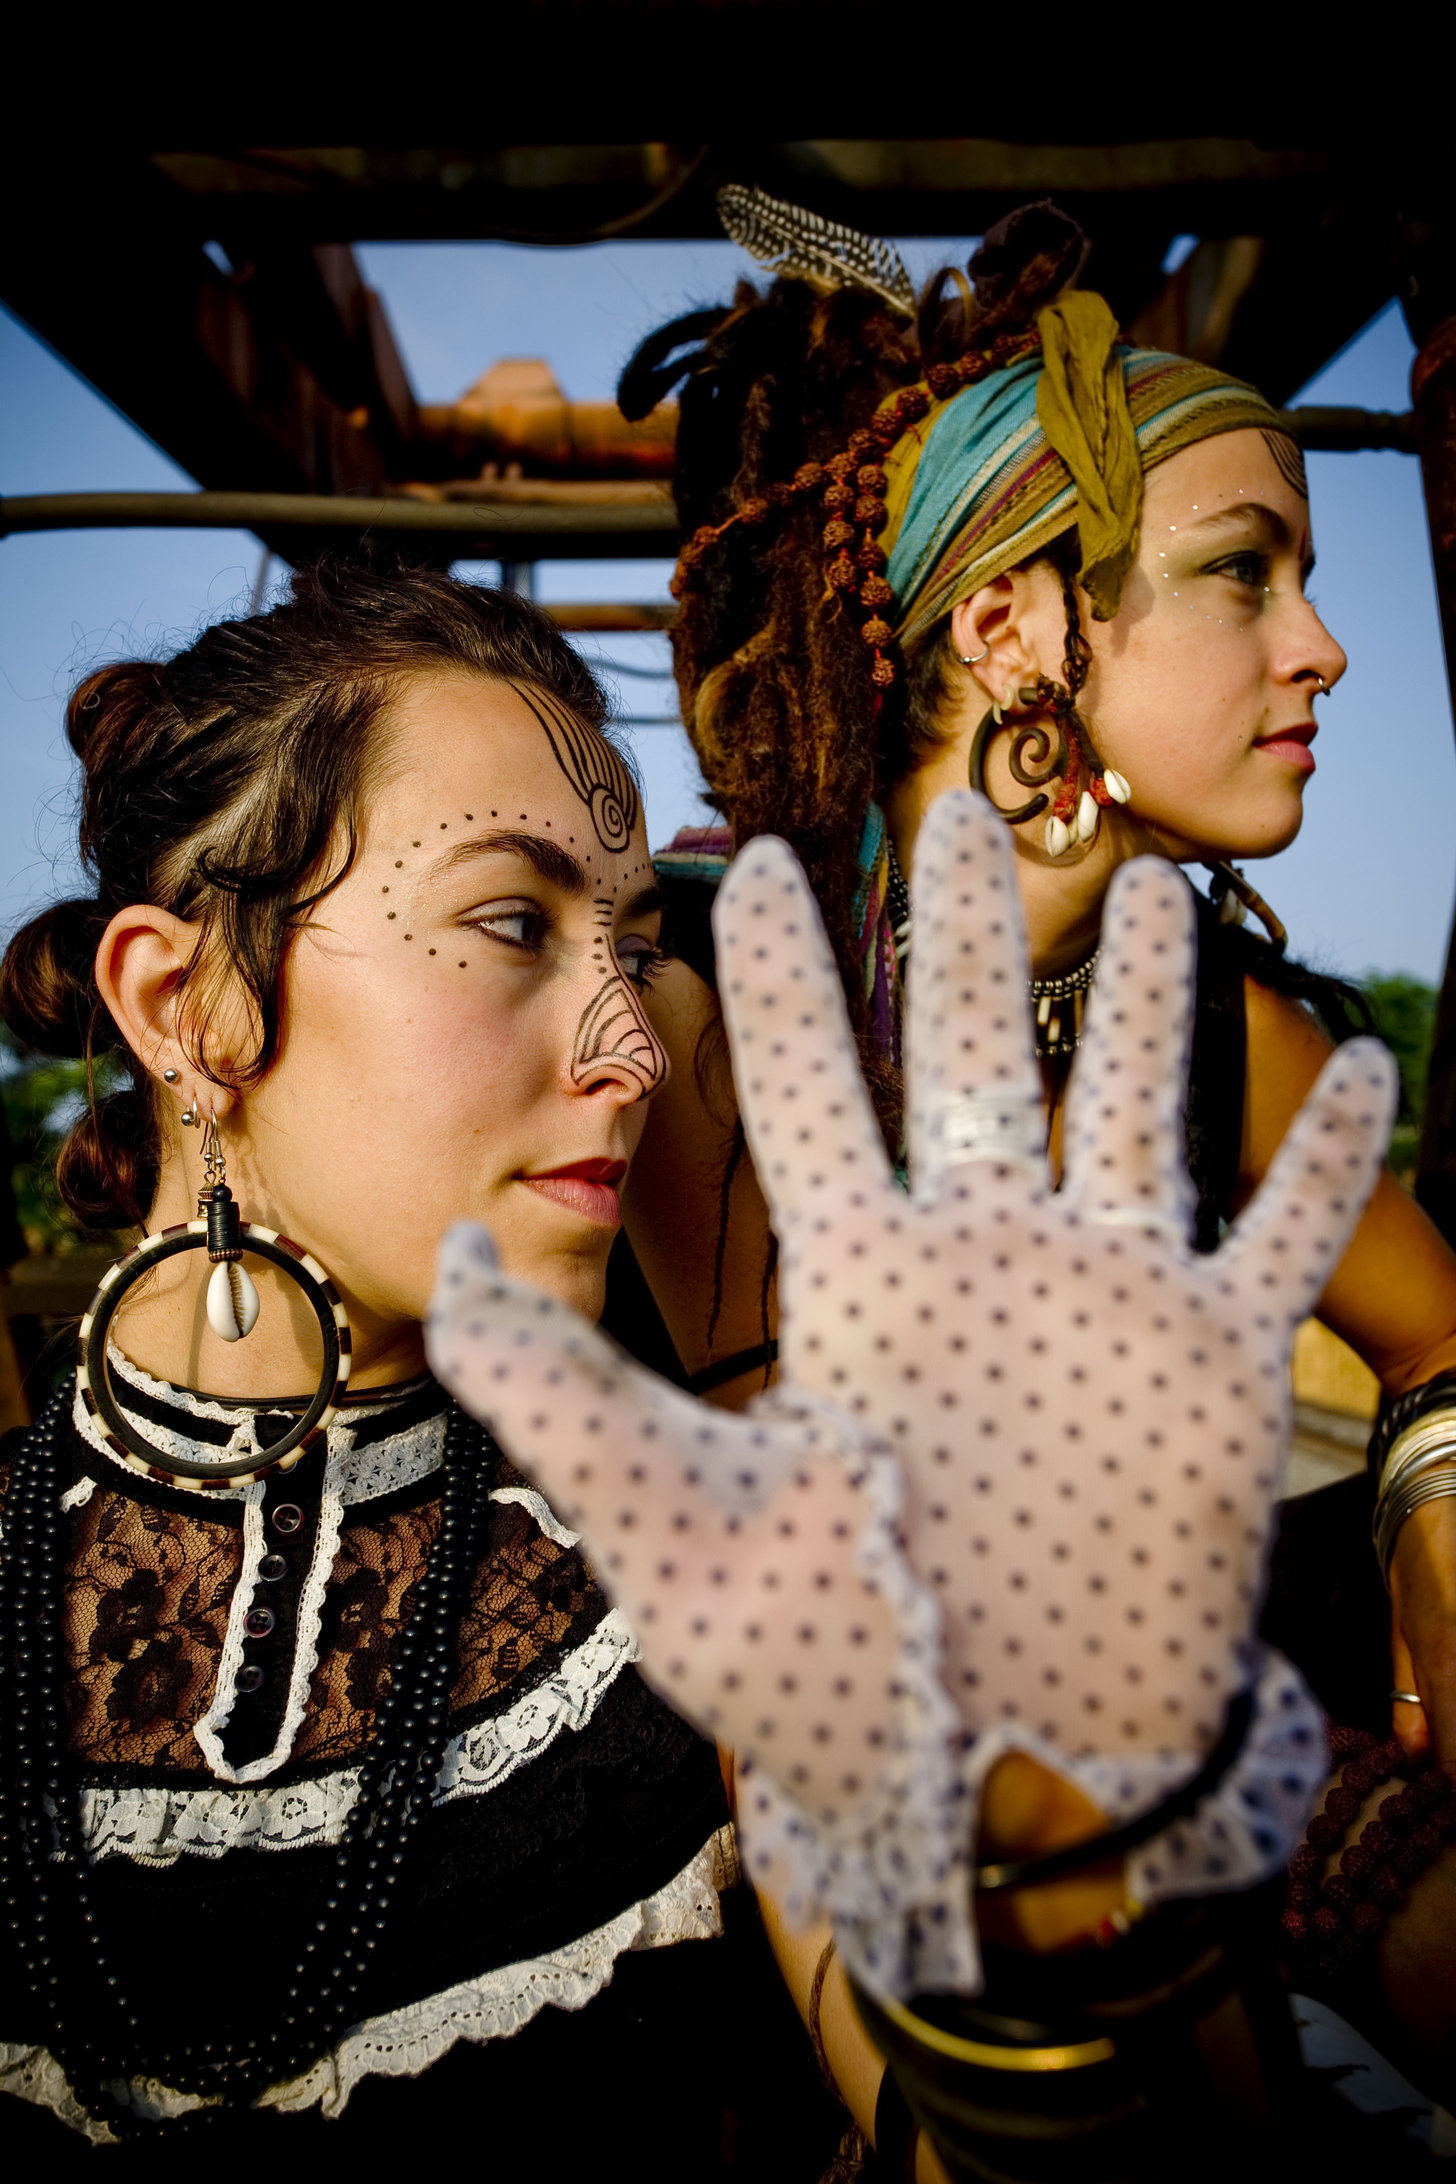 two decorated women sit in an open vehicle and are looking away to their left from the camera. the woman in the foreground has small decorative face paint surrounding her eyes, and the other woman is wearing a scarf around her dreaded hair. the woman in the front has her hand up, full palm to the viewer, in a lilac lace glove.